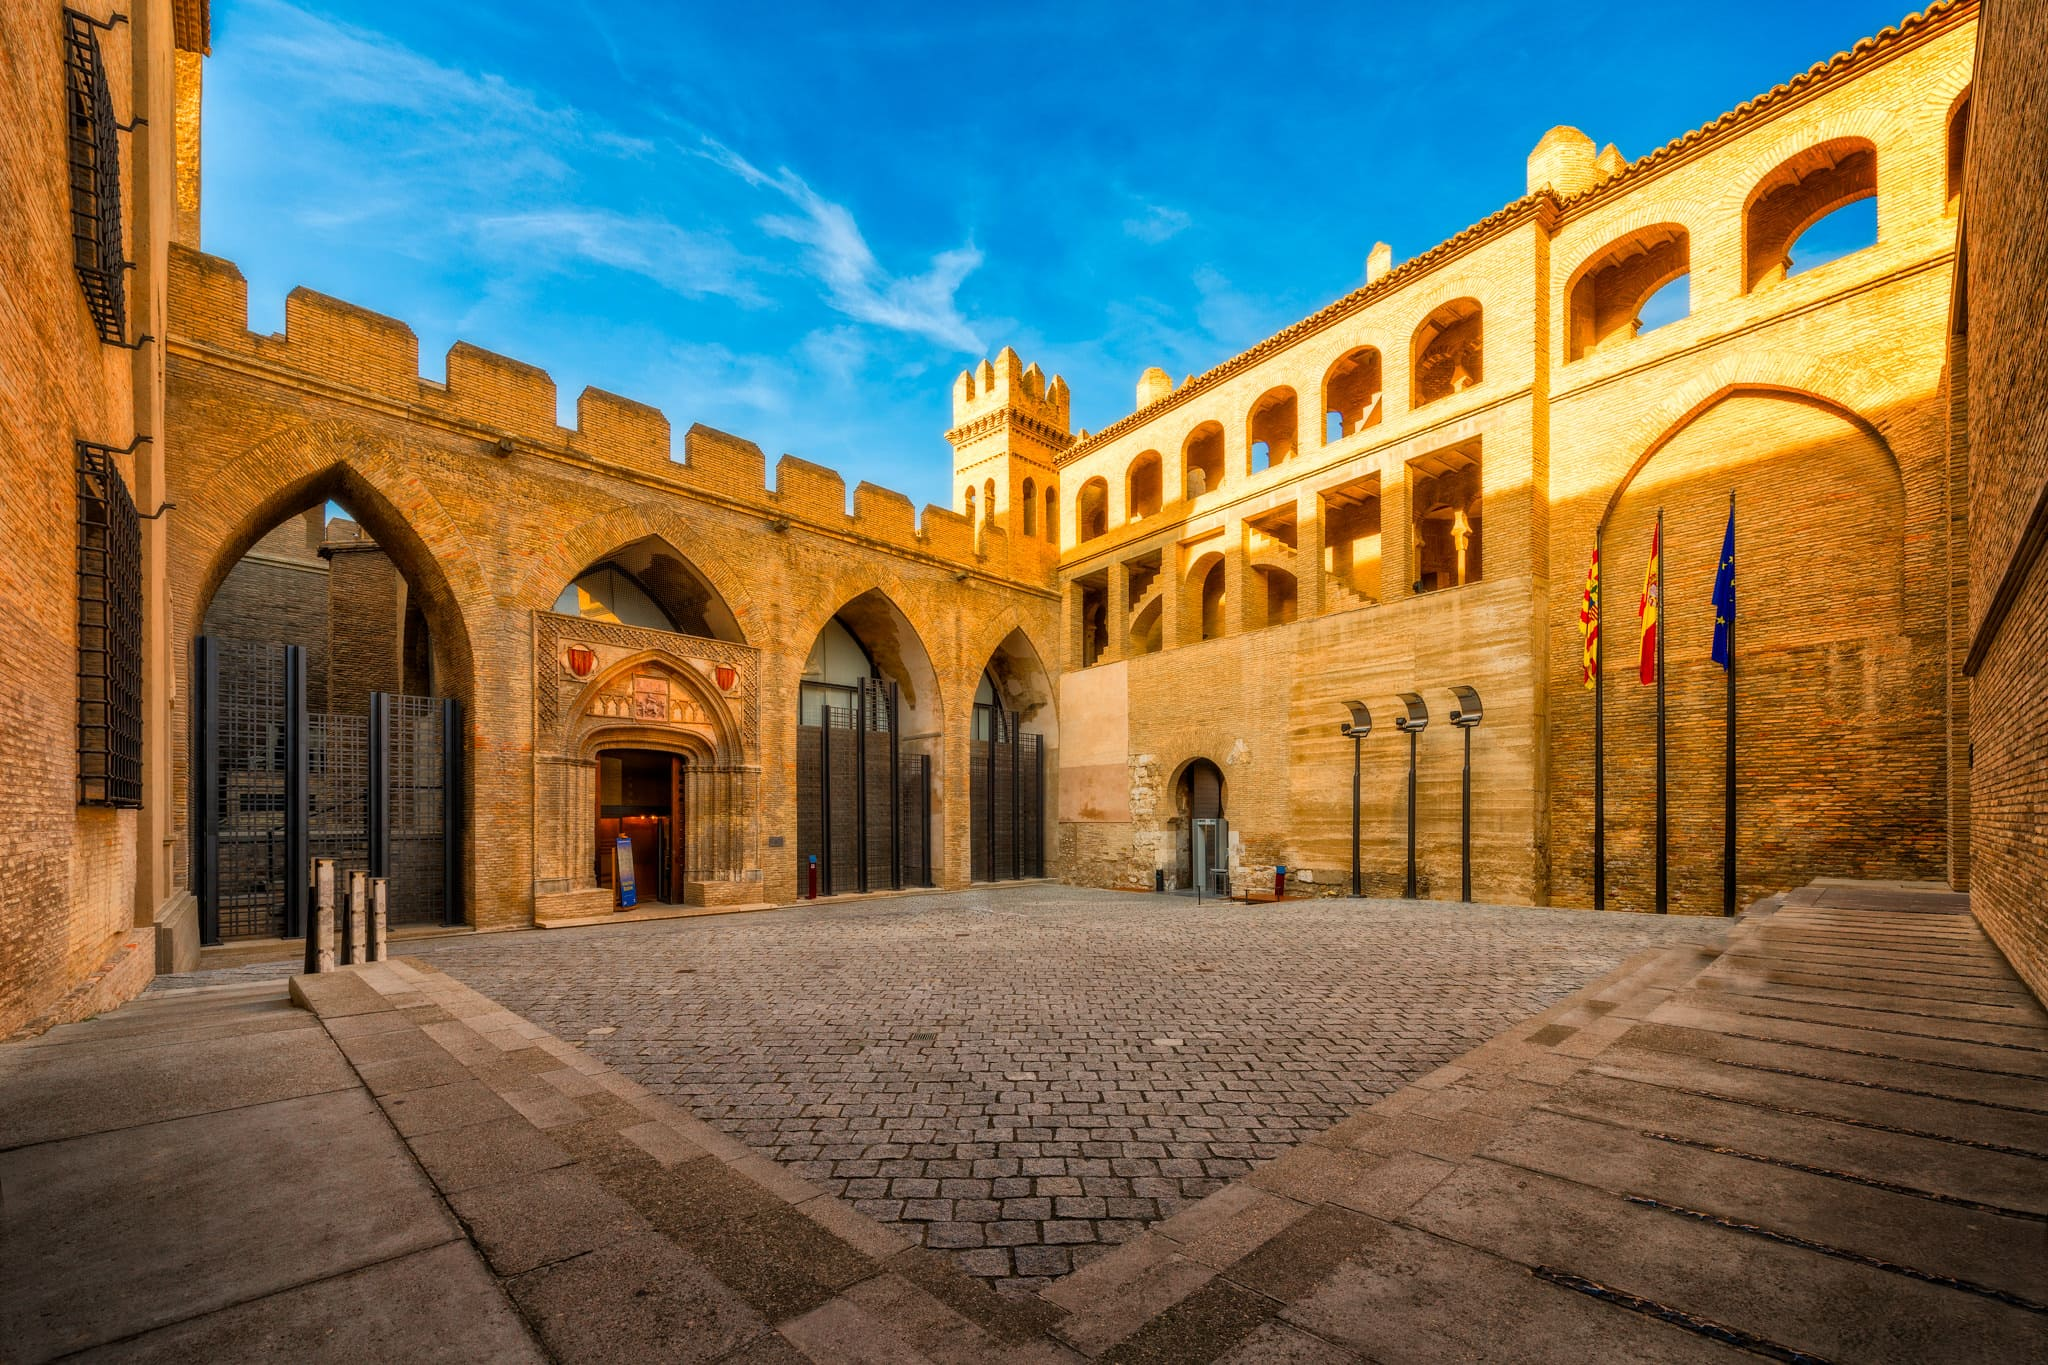 Patio de San Martin and Aljaferia Palace | Zaragoza, Spain